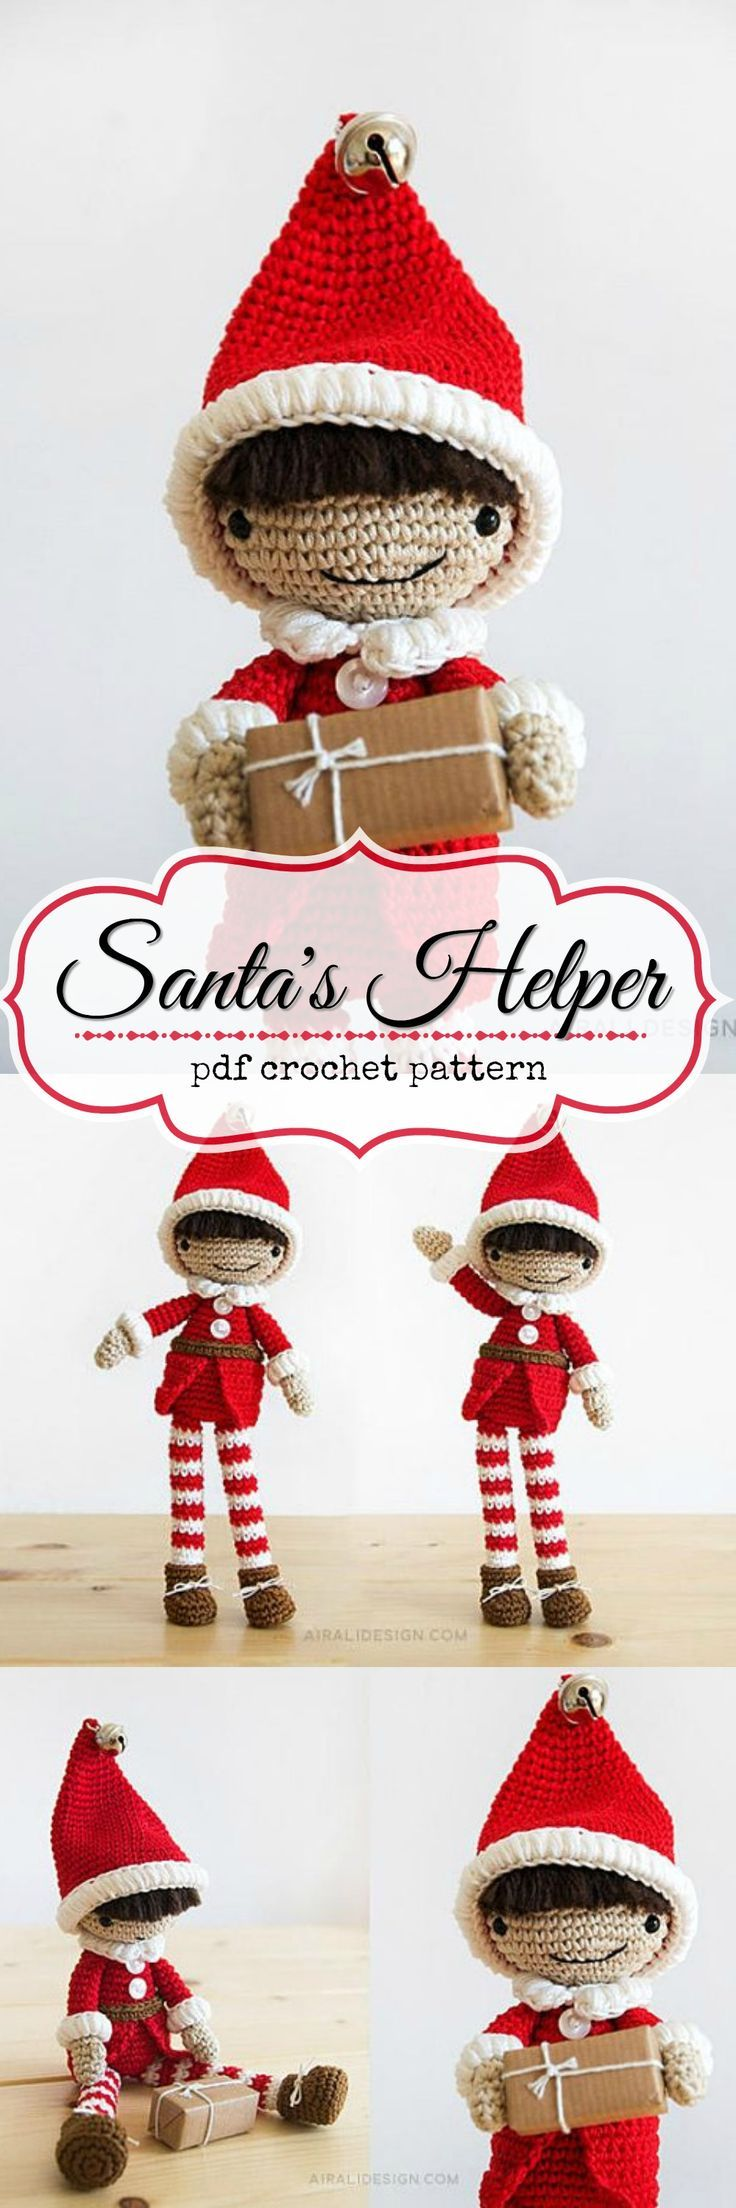 897 best crochet images on pinterest crochet clothes santas helper elf pdf crochet pattern to download i love his cute little pointy hat with the bell on top and his striped stockings bankloansurffo Gallery